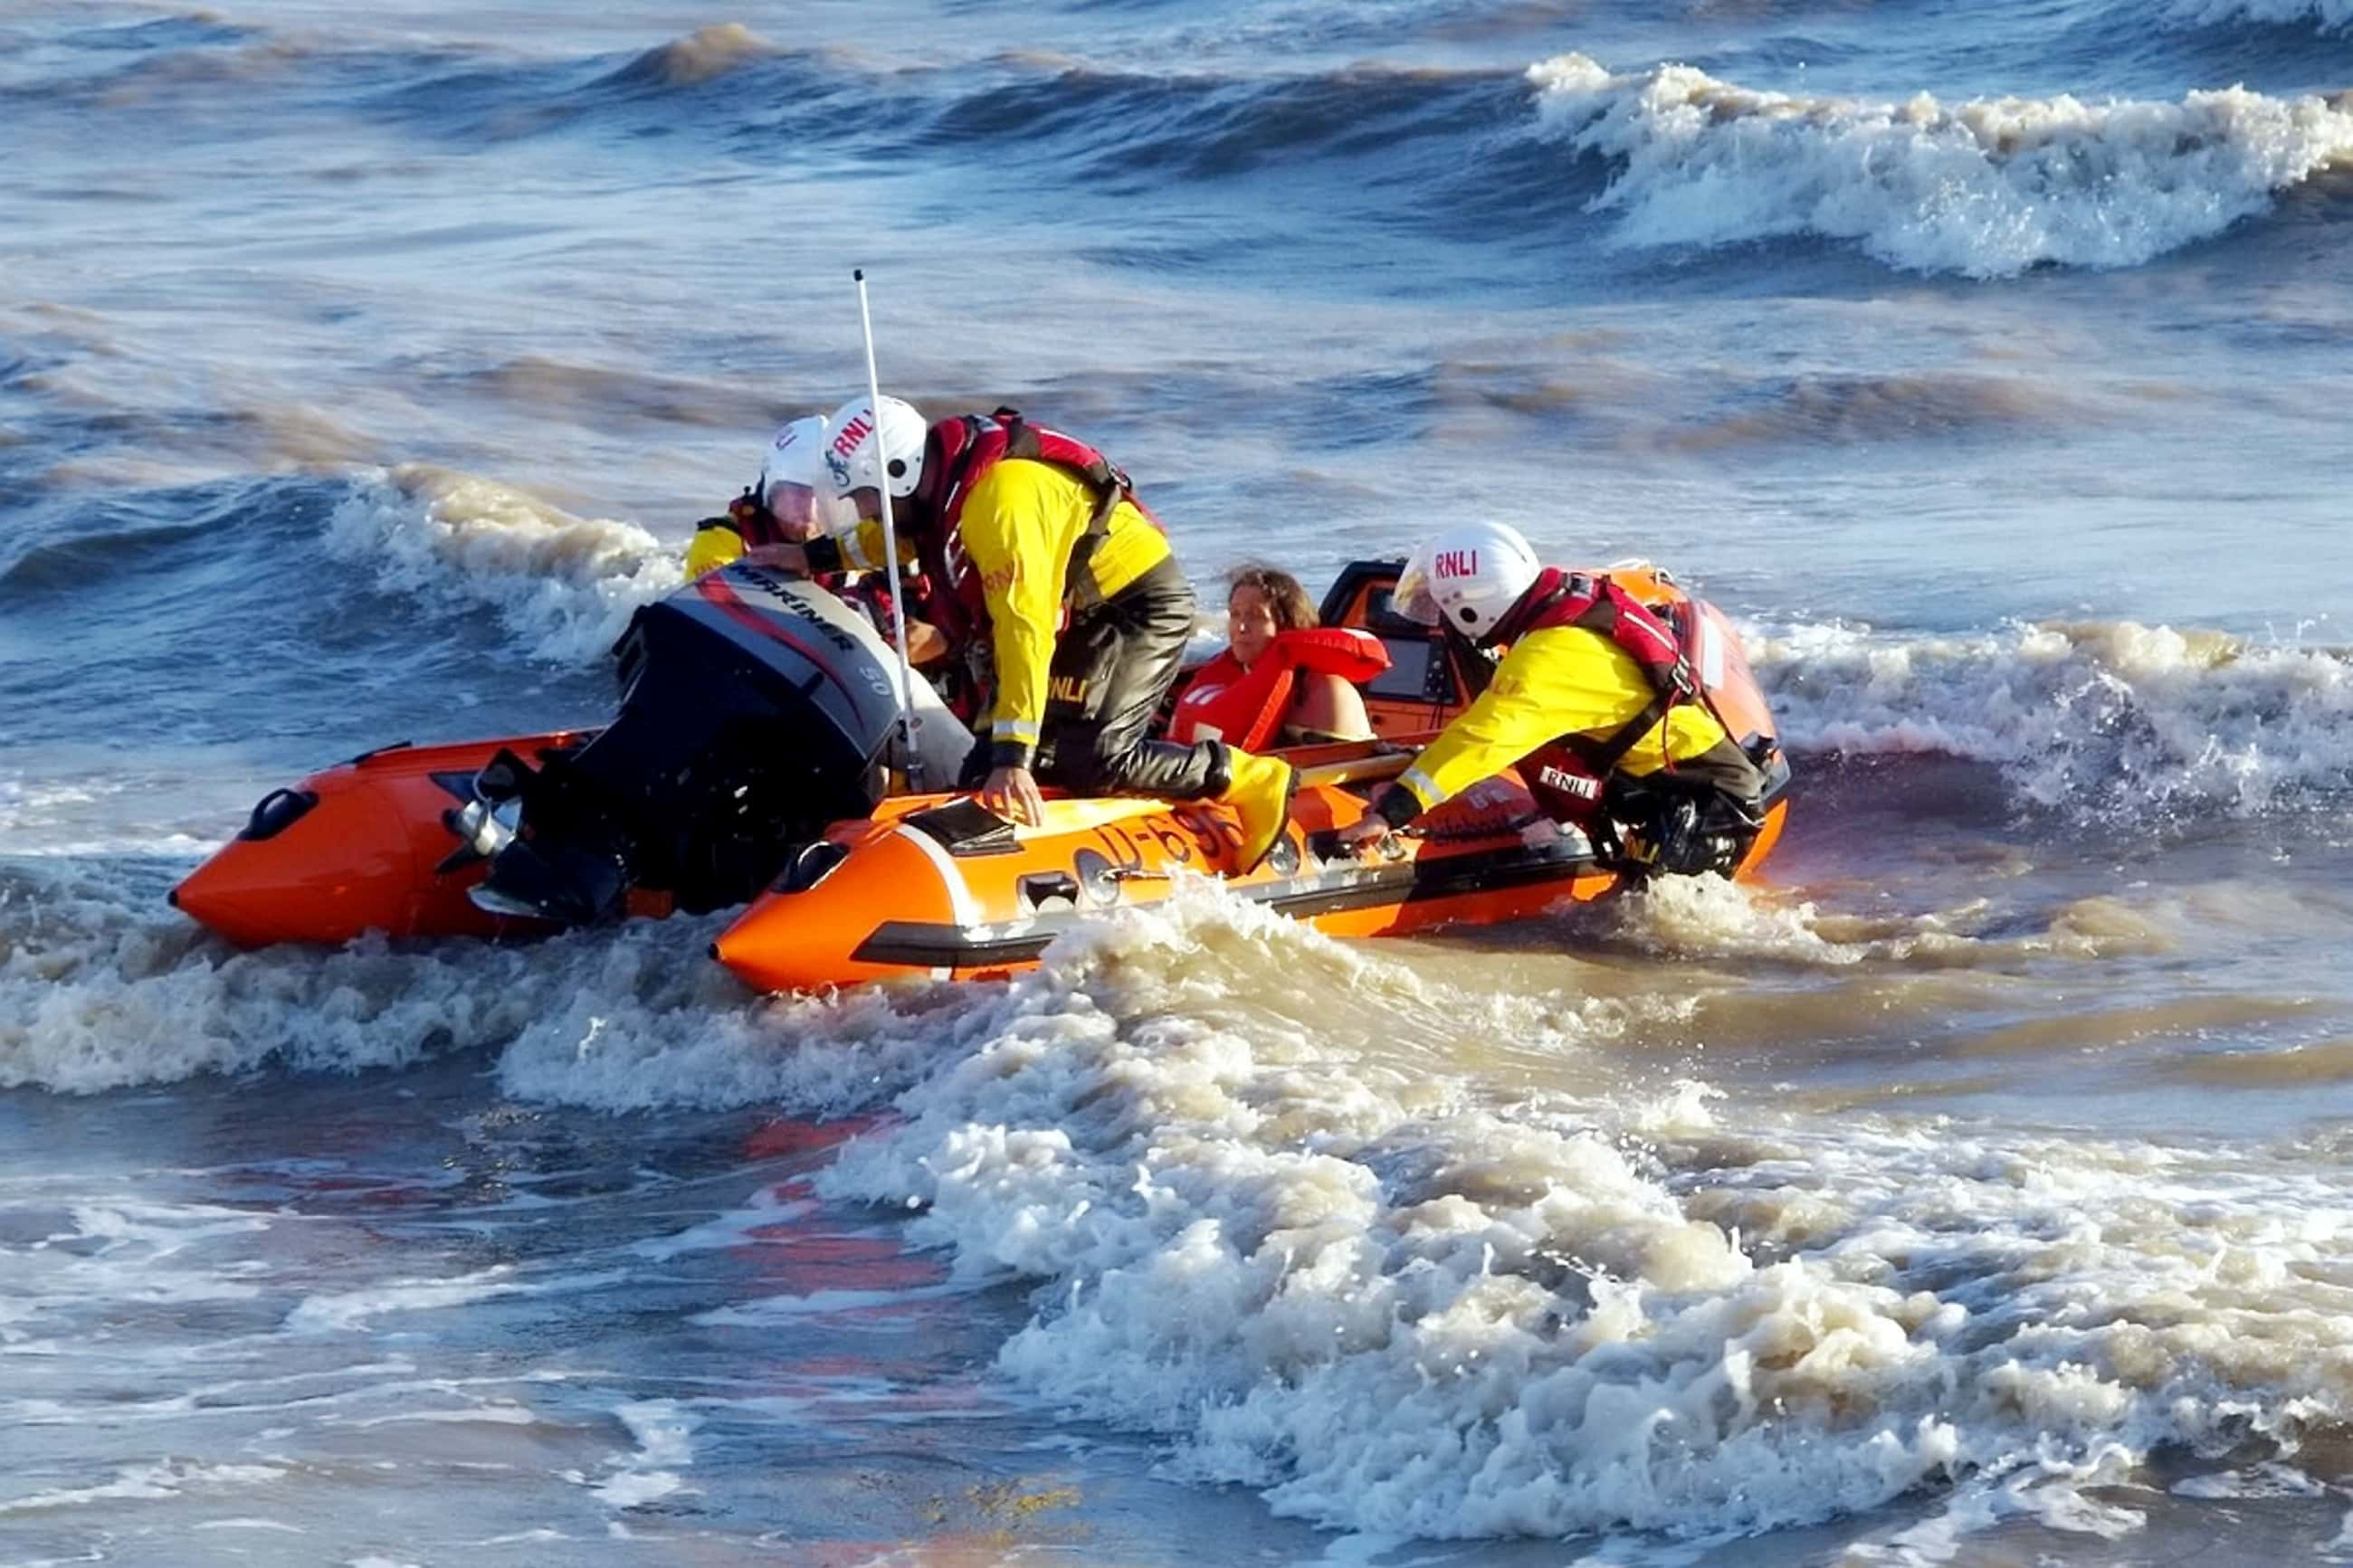 olice, ambulances, Coastguards, lifeboats and a search and rescue team were called out when three people became cut off (SWNS)